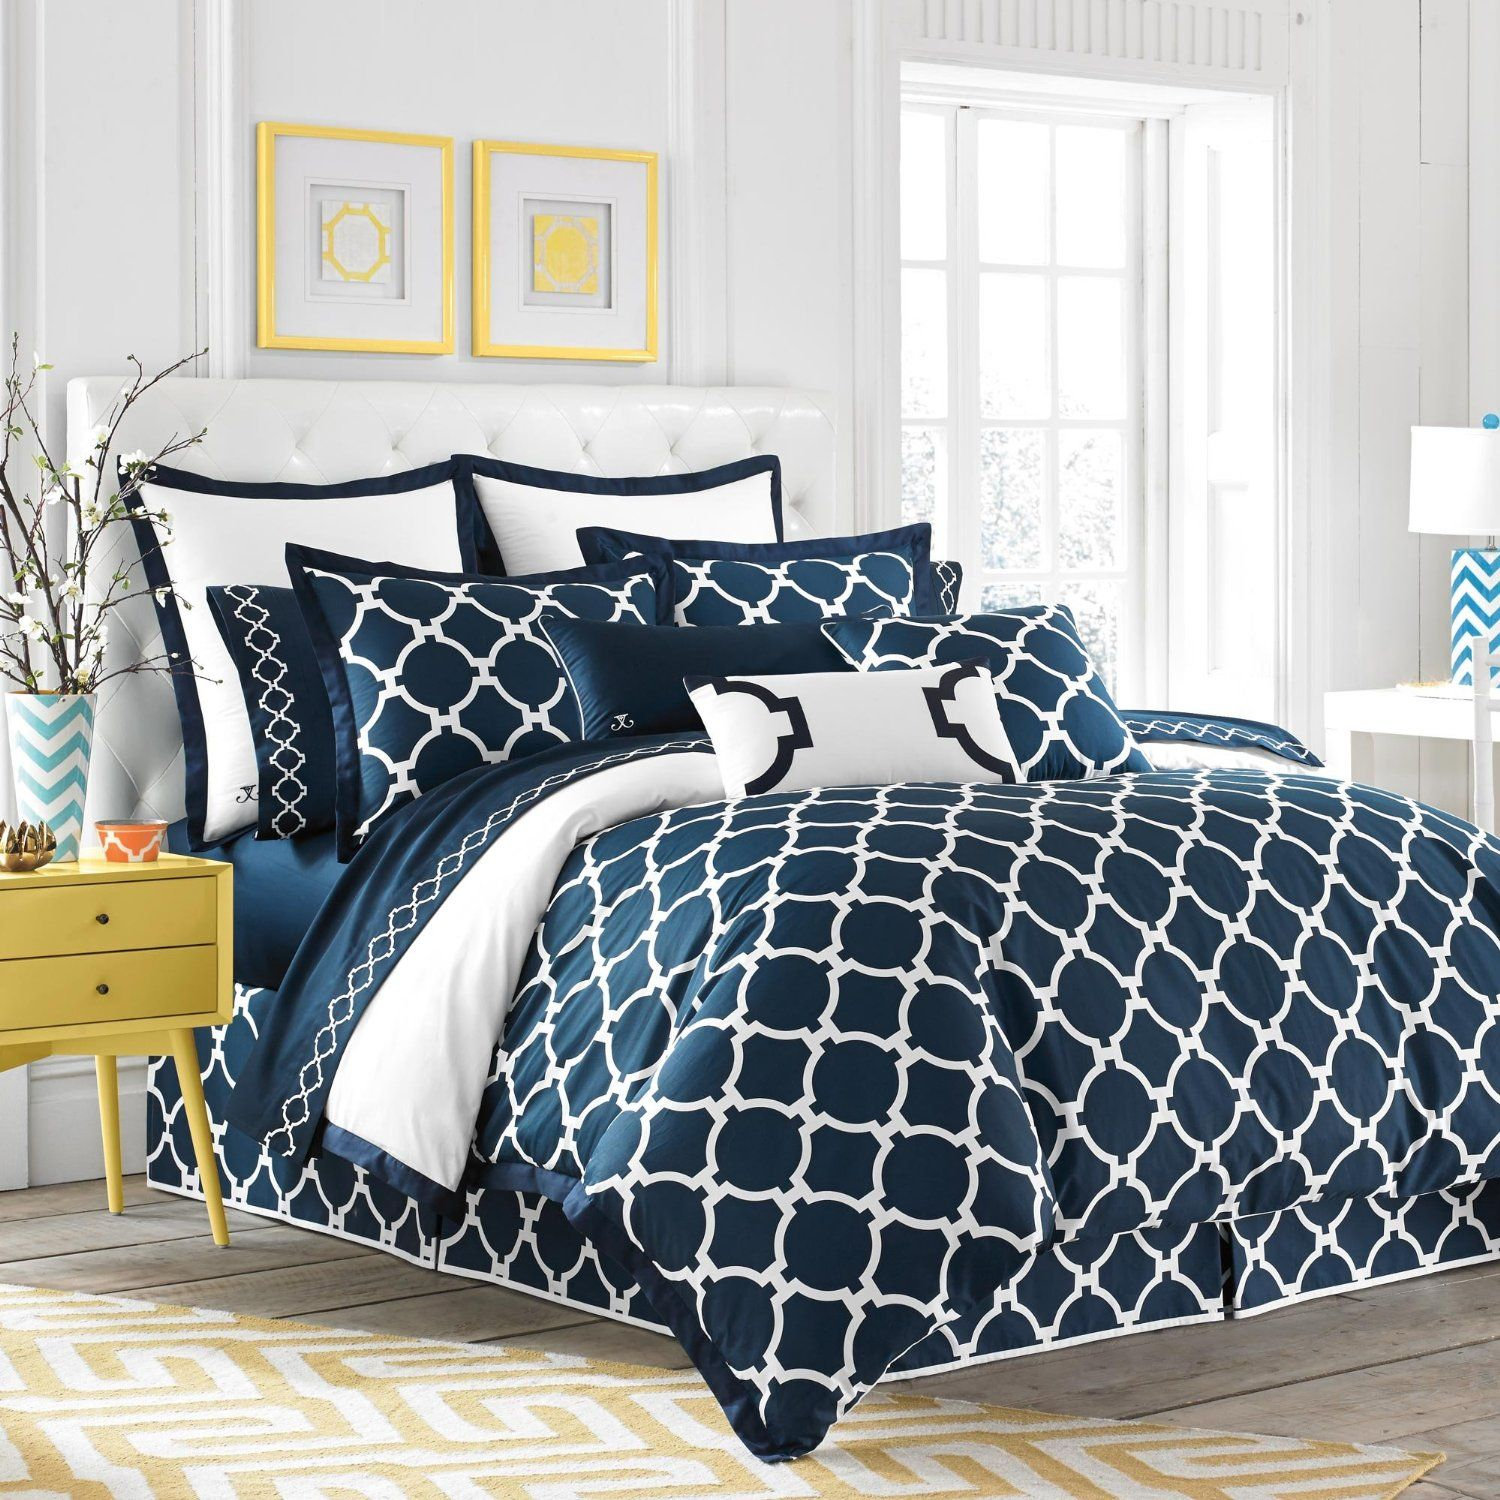 Enchanting Nautical Duvet Cover Idea With Orted Colors